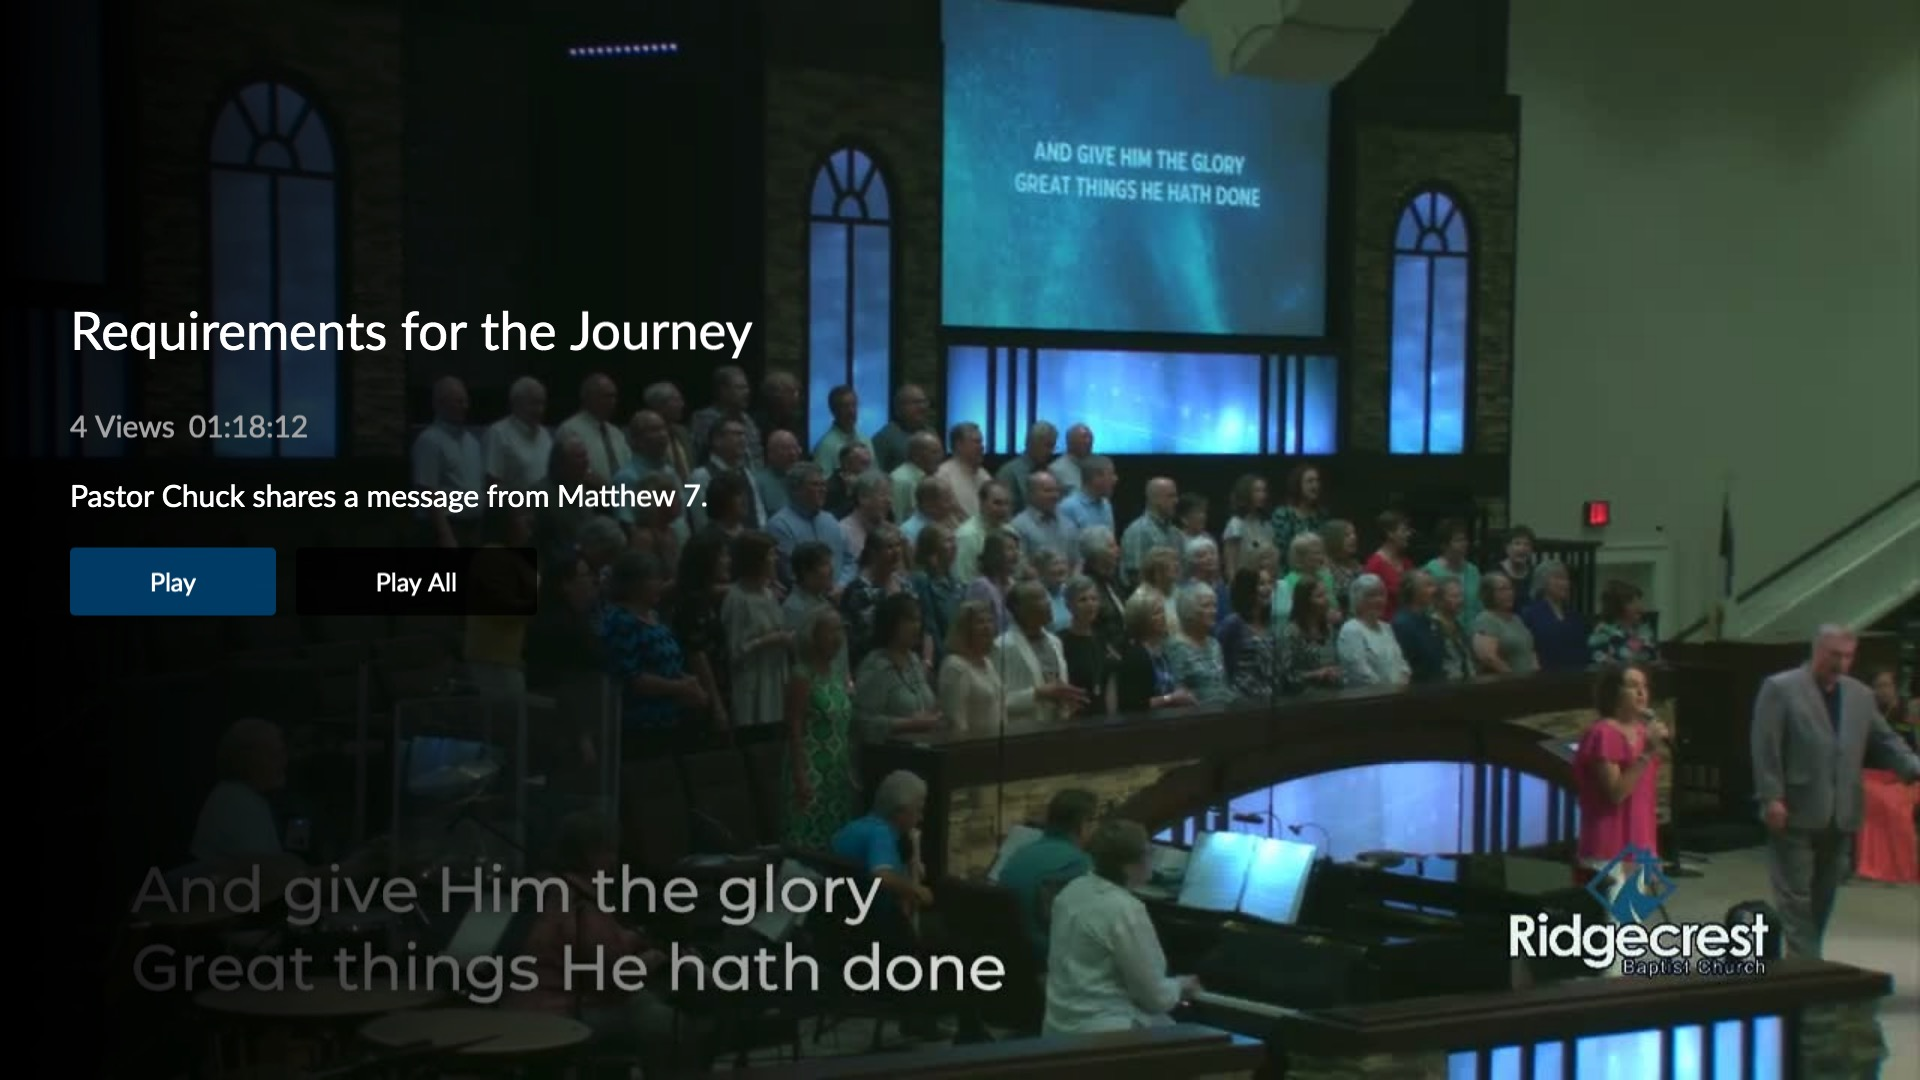 Ridgecrest Baptist Church Screenshot 003